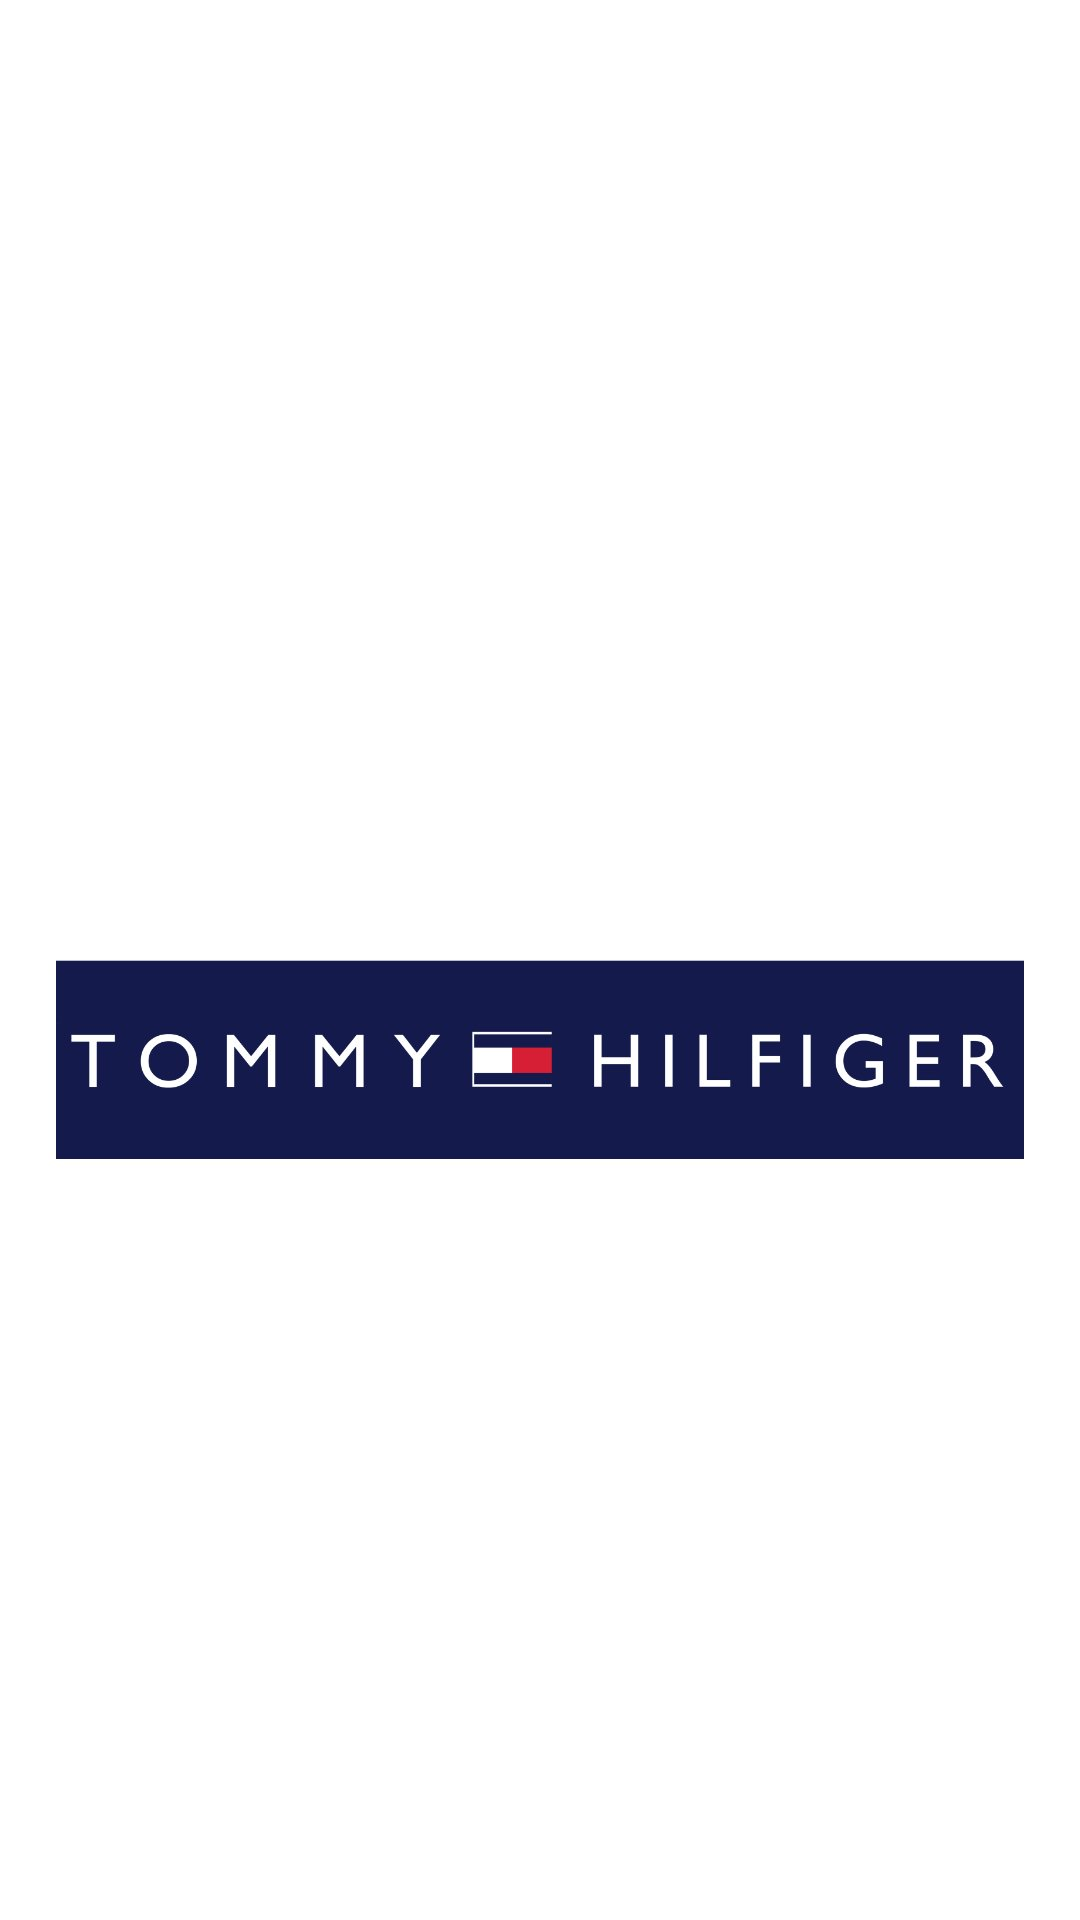 tommyhilfiger03 - TOMMY HILFIGER/トミー・ヒルフィガーの高画質スマホ壁紙20枚 [iPhone&Androidに対応]